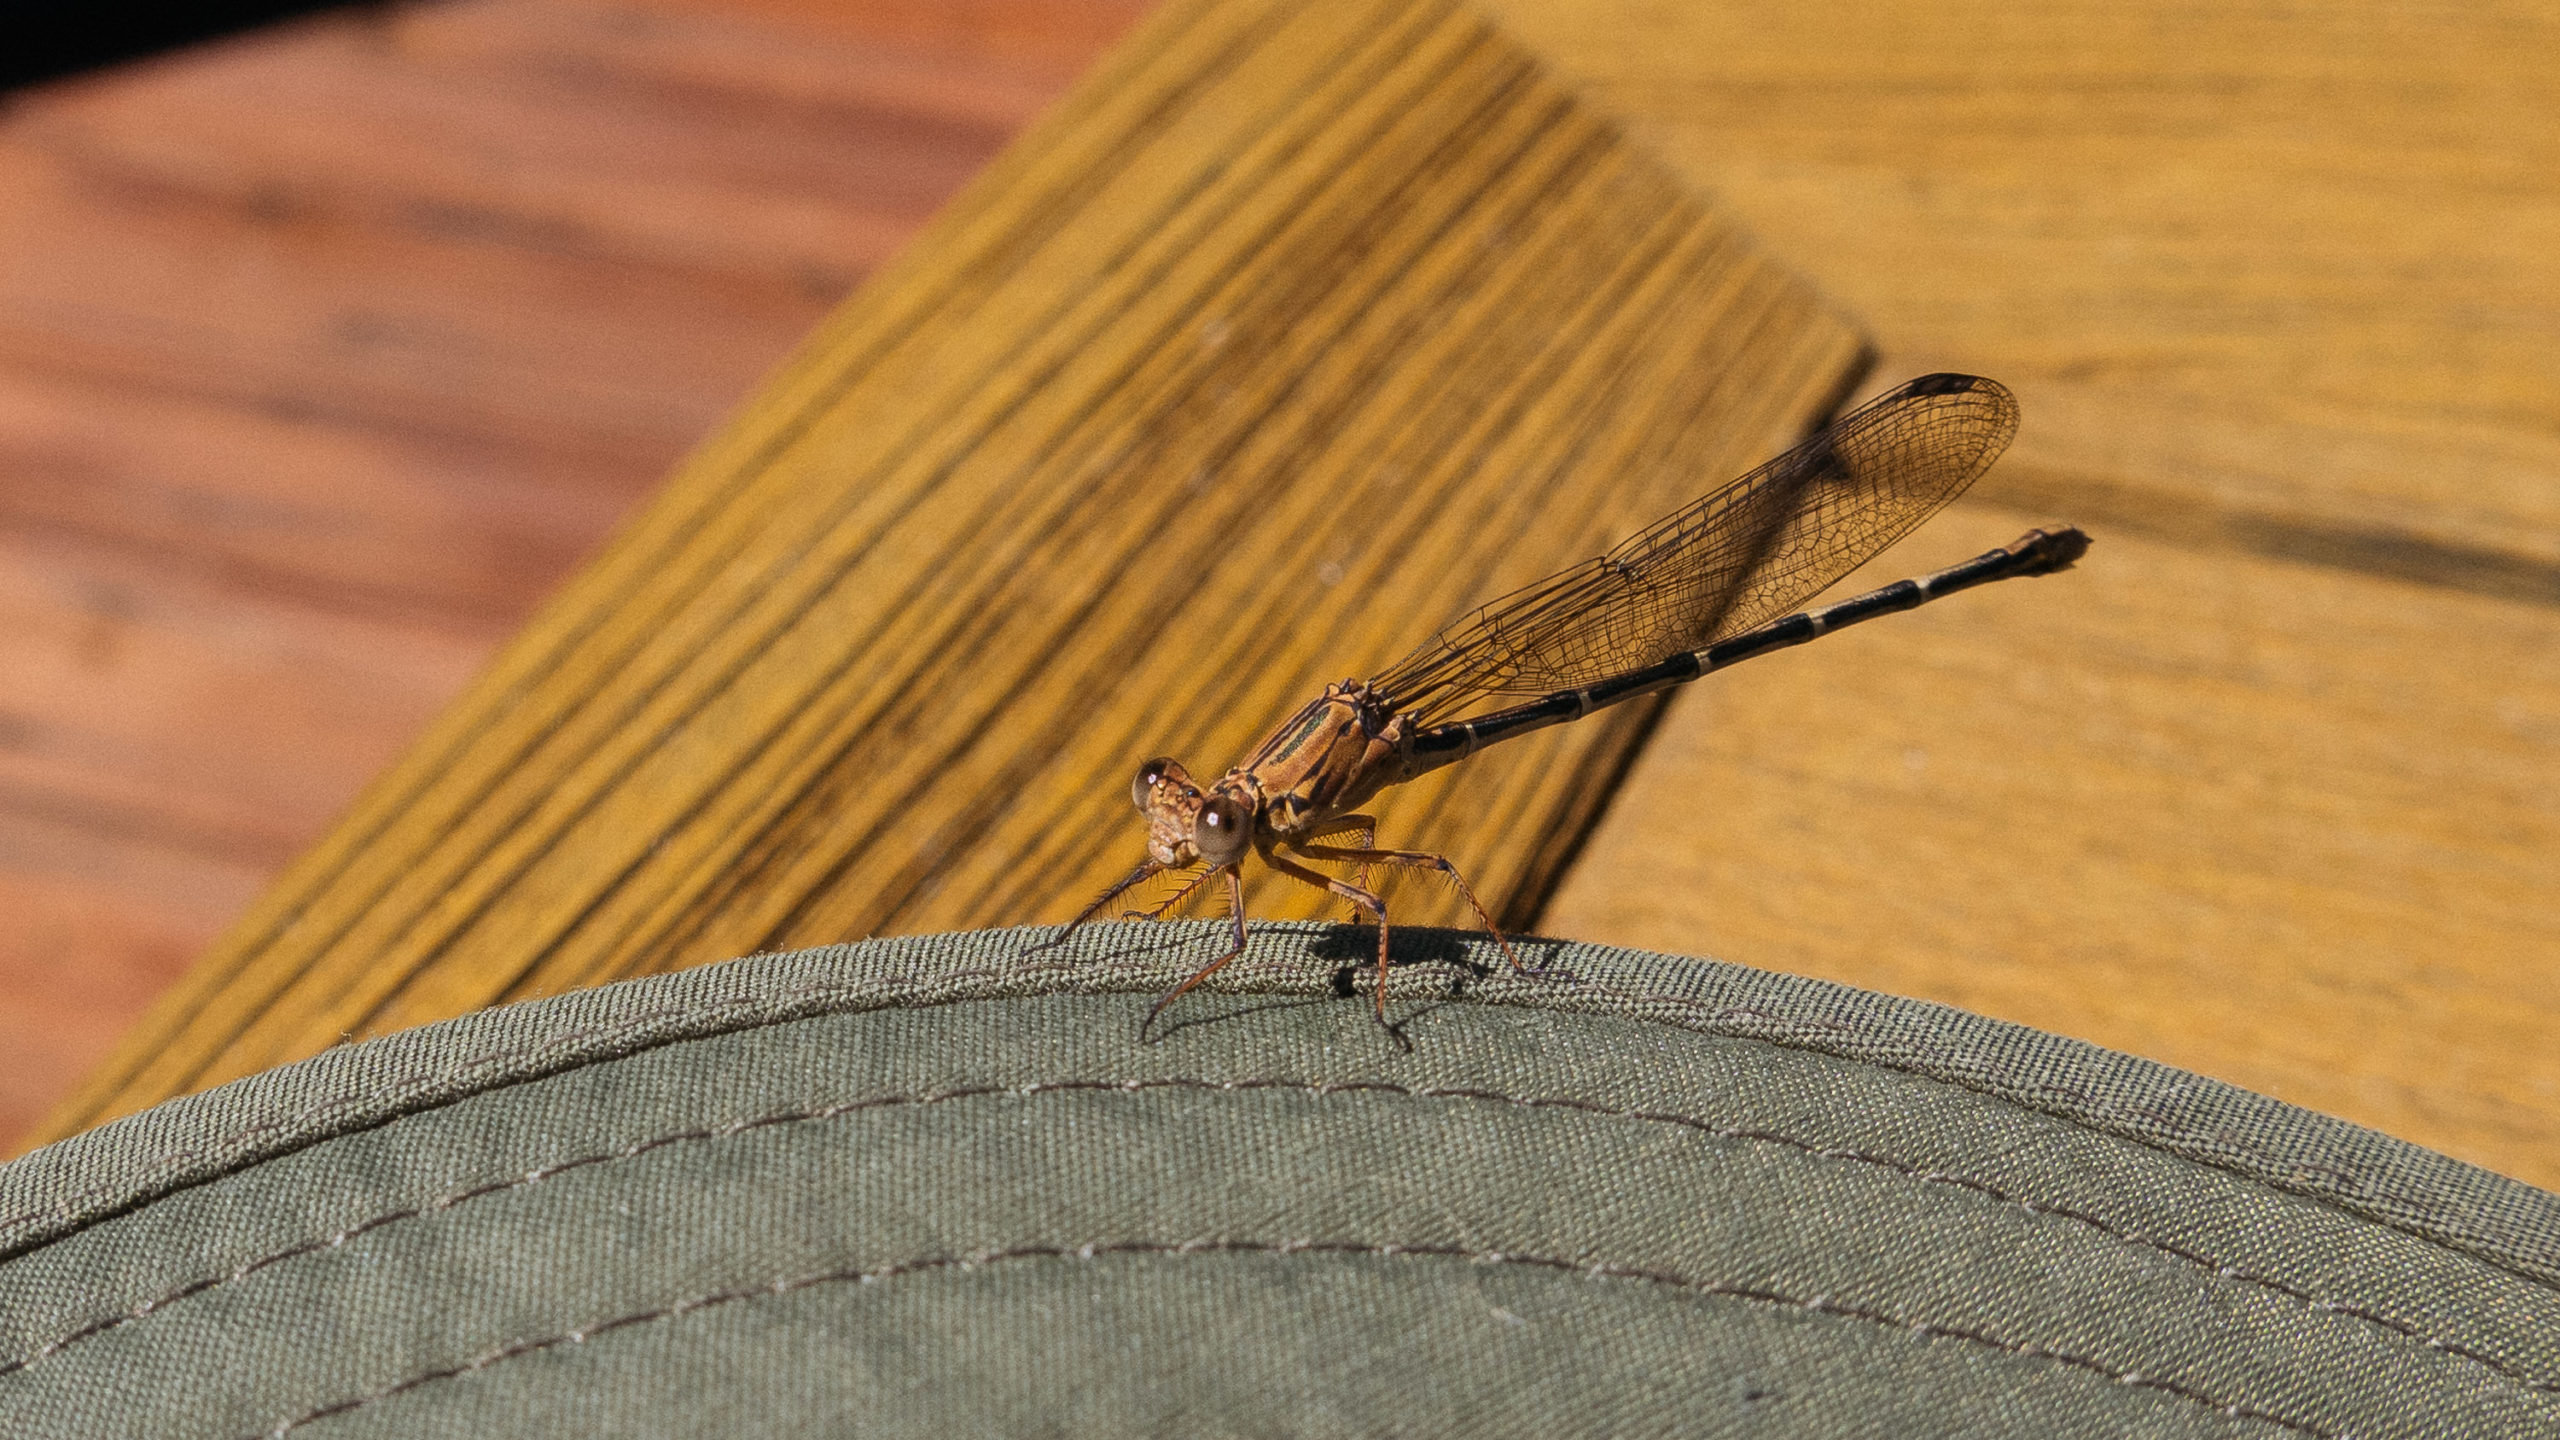 A dragonfly resting briefly on the wide brim of a green hat